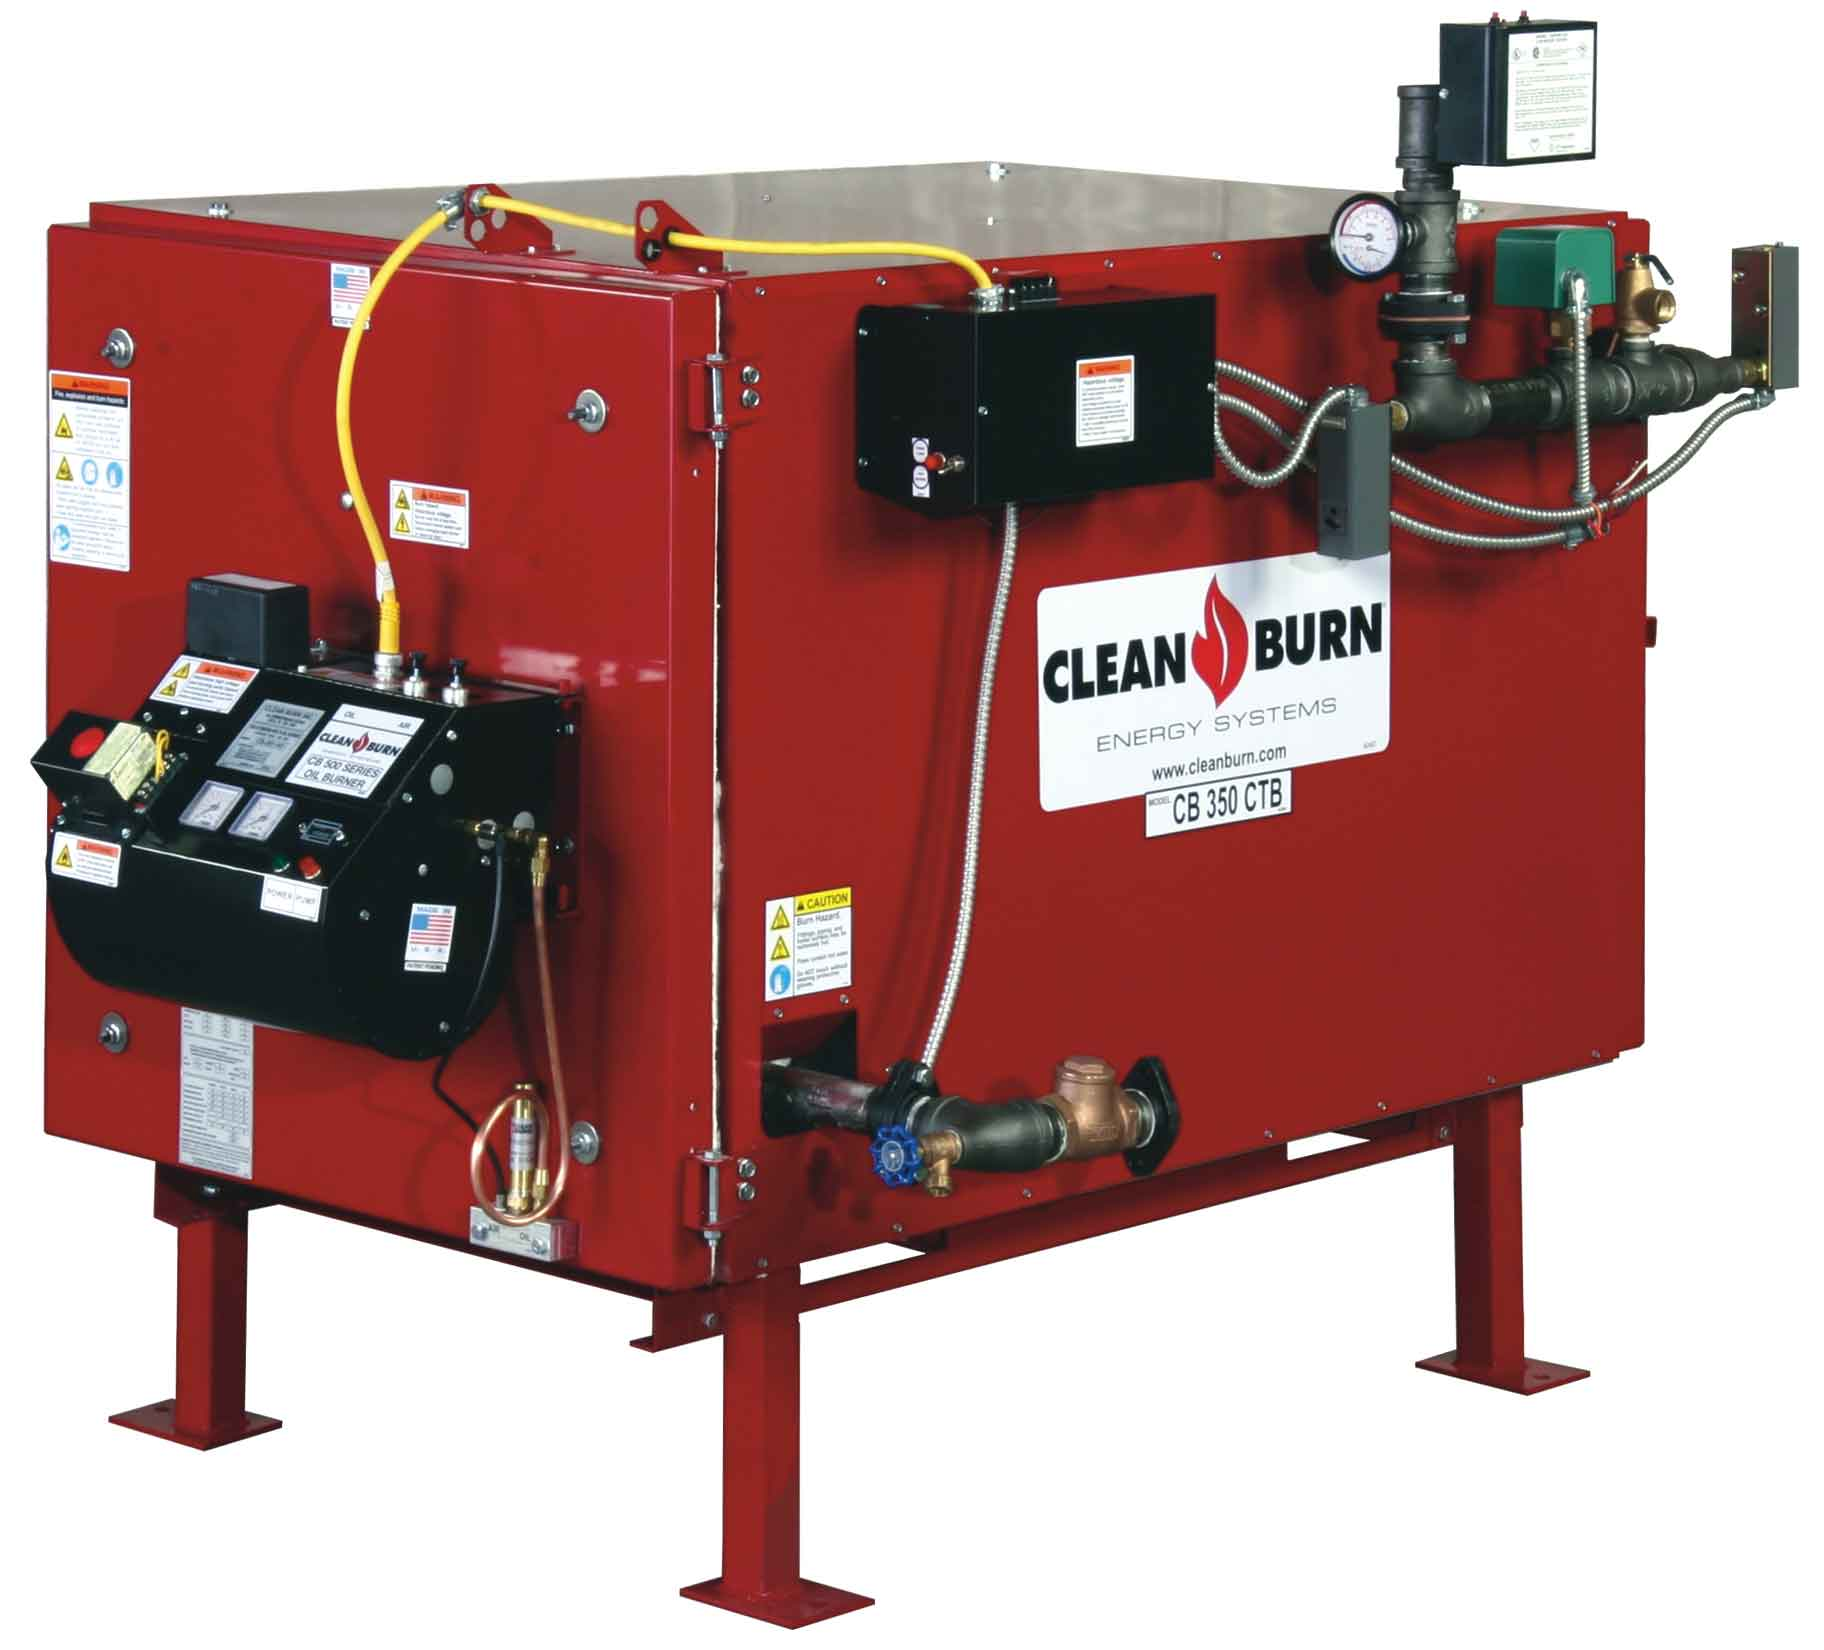 clean burn burner wiring diagram wiring diagramclean burn waste oil boiler productsclean burn cb 350 ctb waste oil boiler